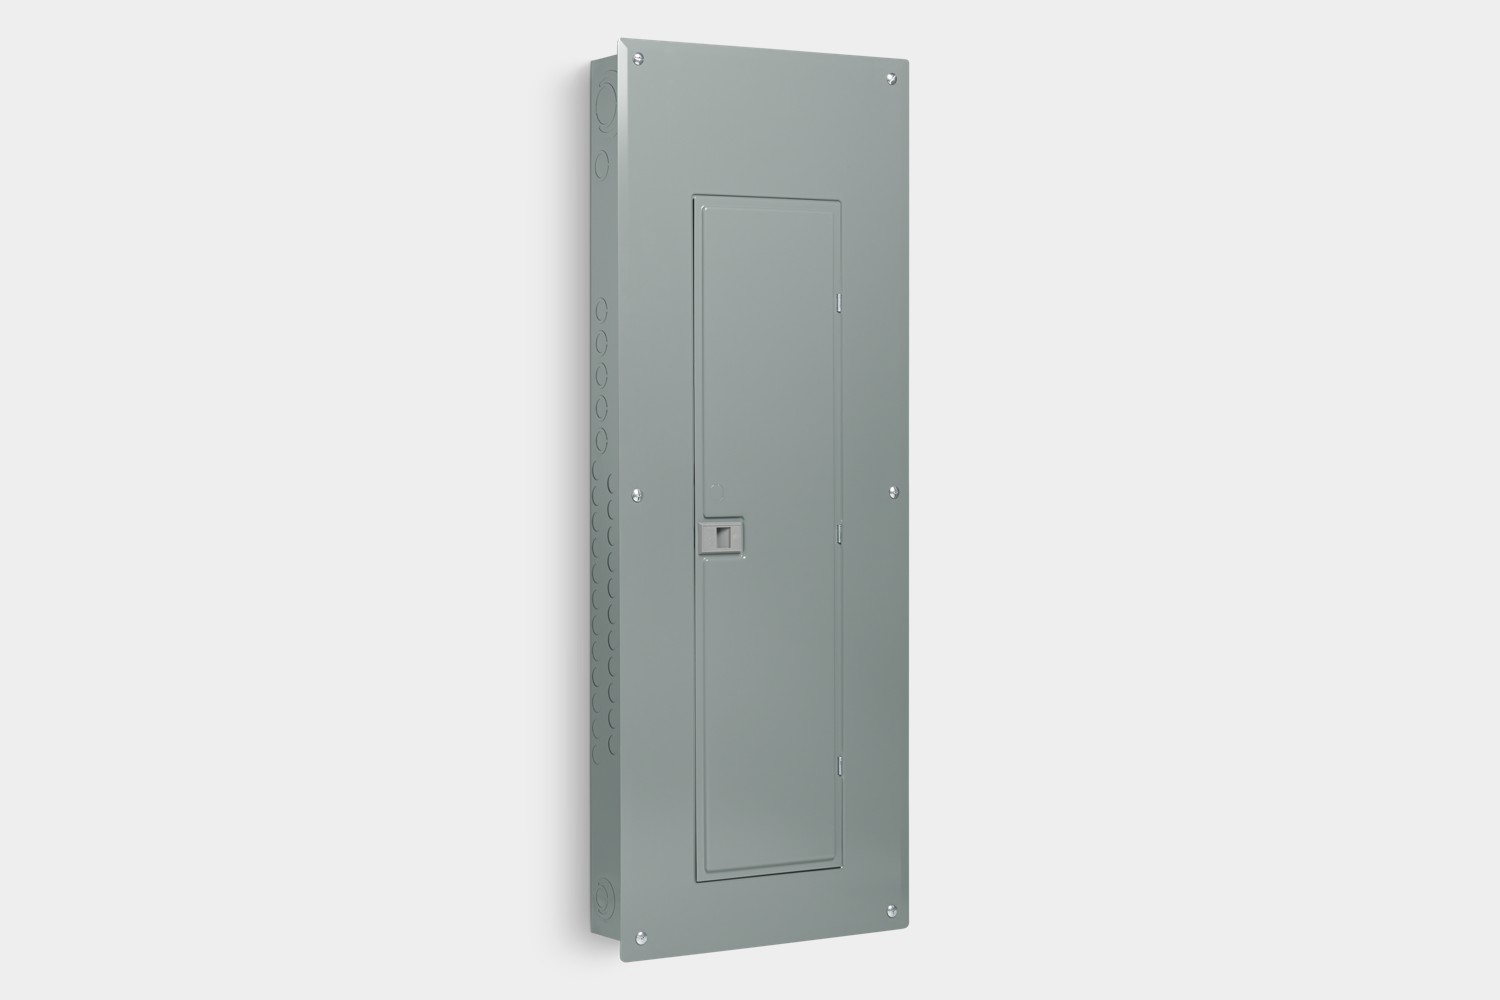 medium resolution of 20resal with automatic transfer switch